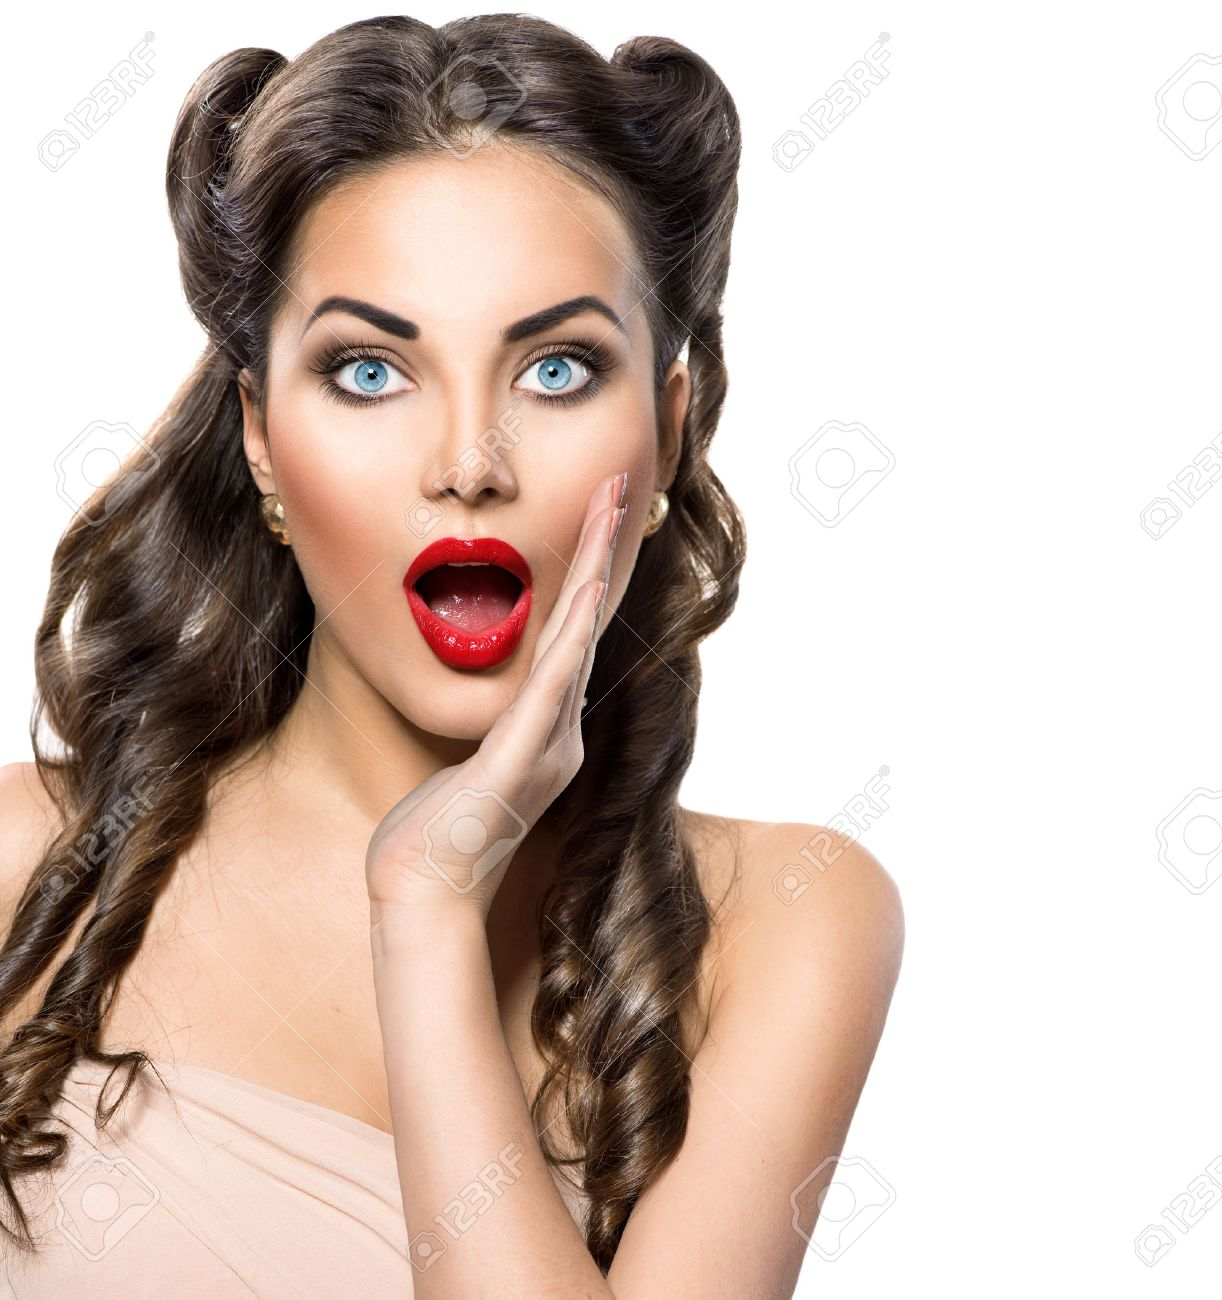 surprised retro woman beauty vintage excited girl over white stock